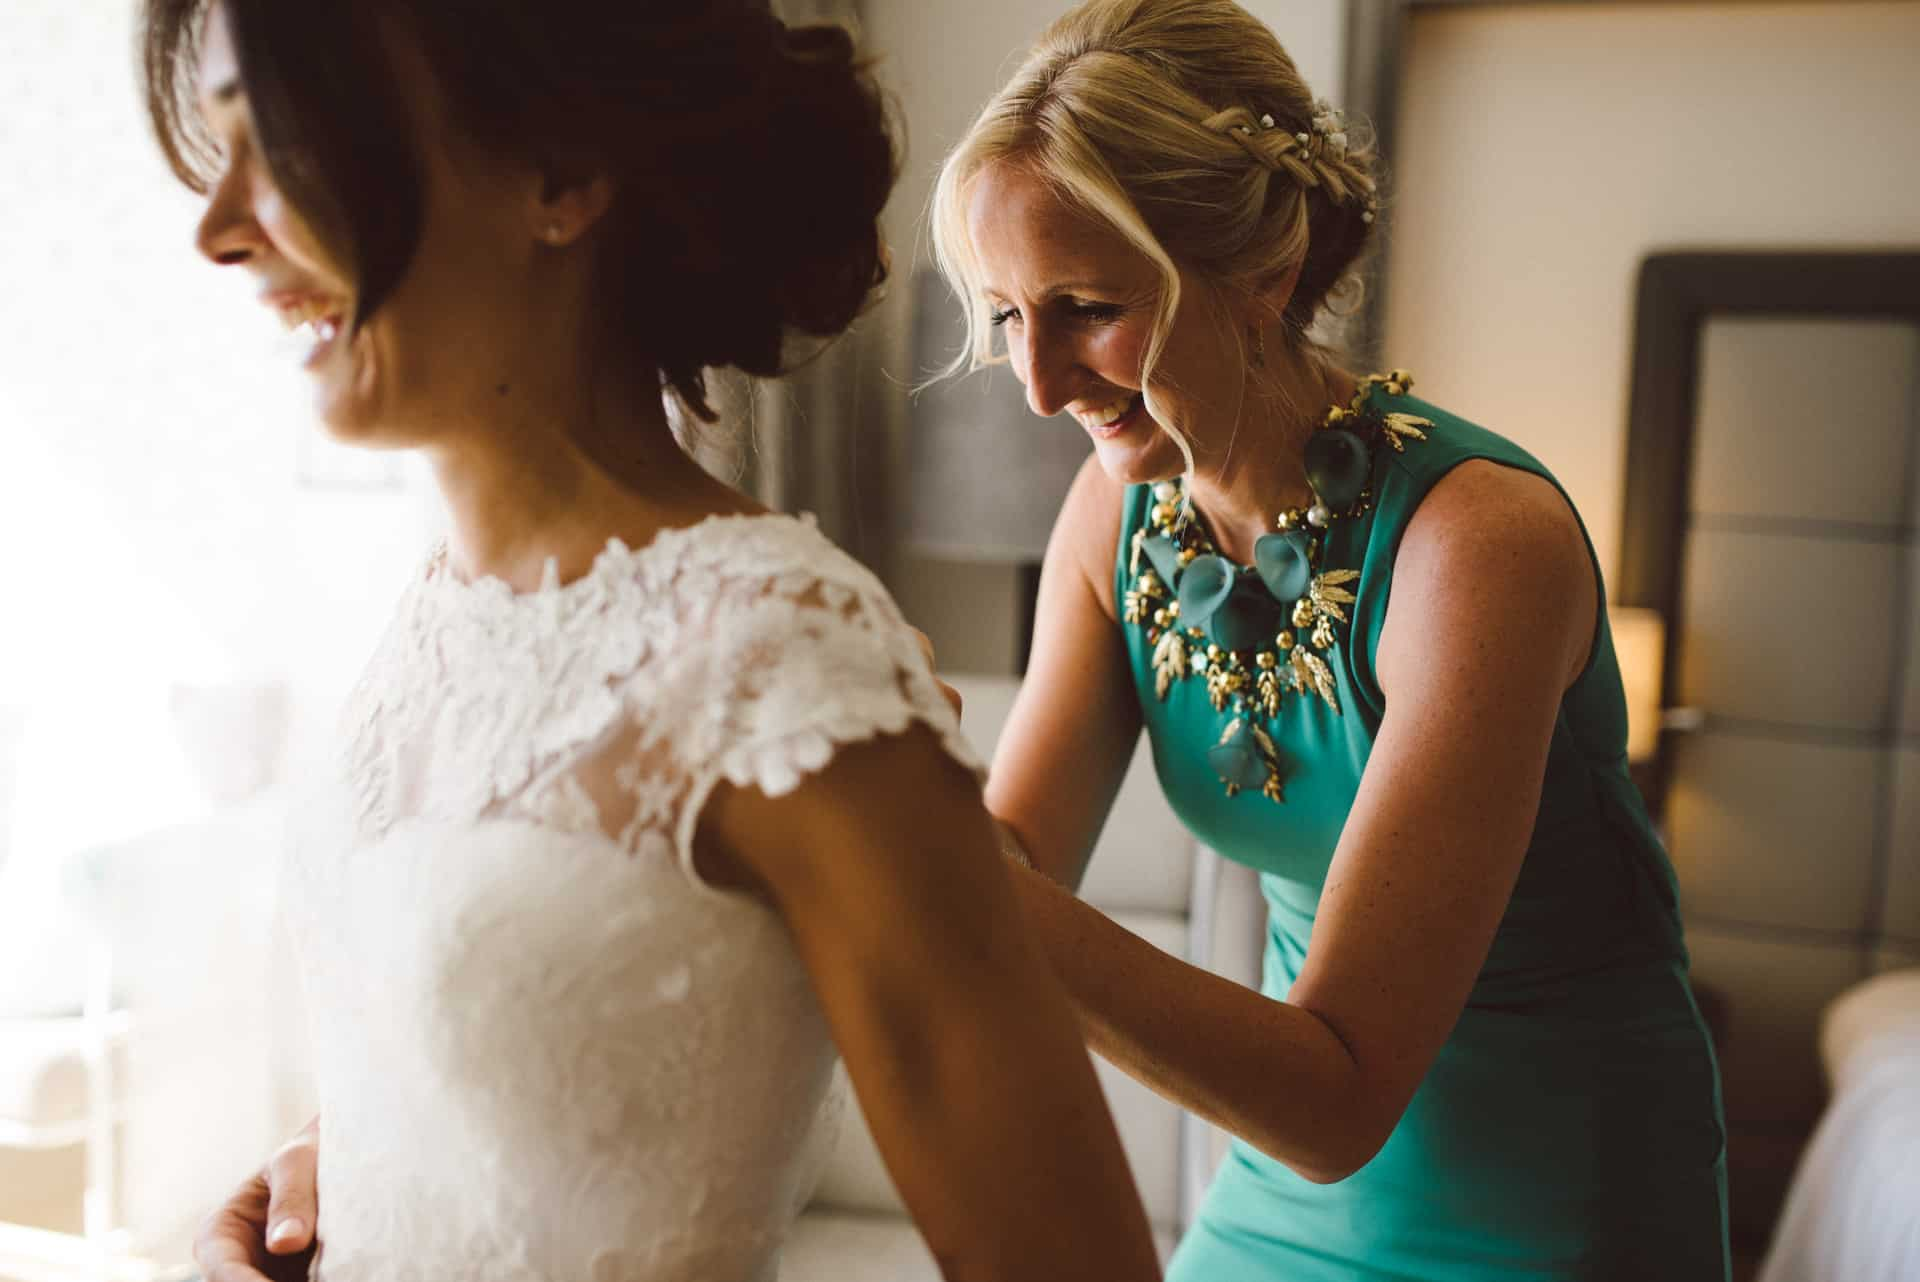 Best wedding images of the year (192 of 316)